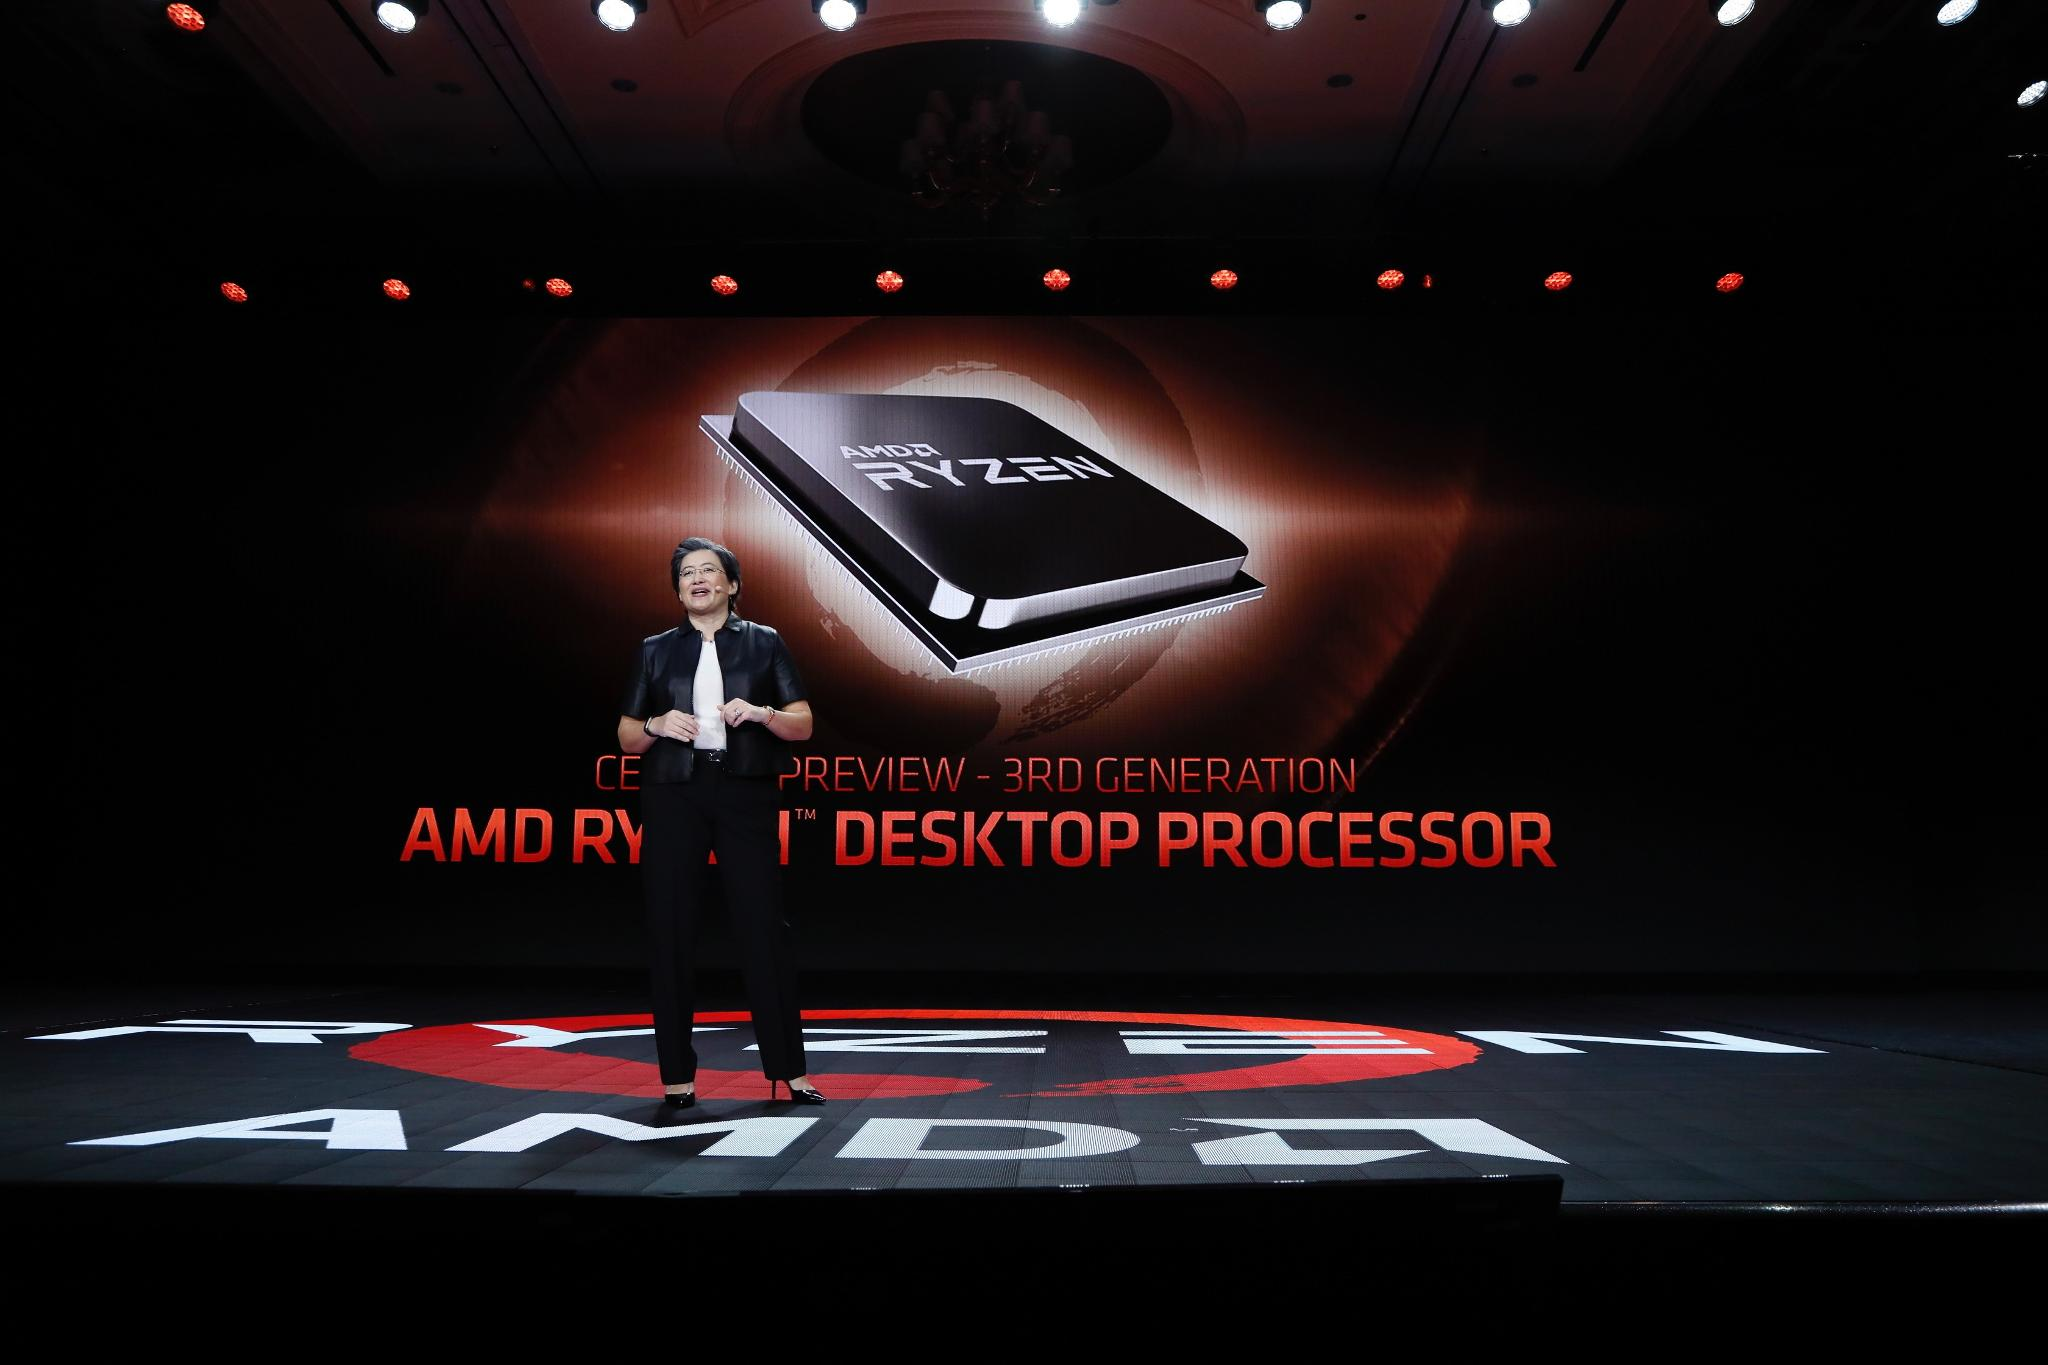 AMD CEO: Ryzen CPUs Now Account To More Than 50% Premium Processor Sales Globally, Strong Demand For Ryzen 3000 & Ryzen 2000 CPUs